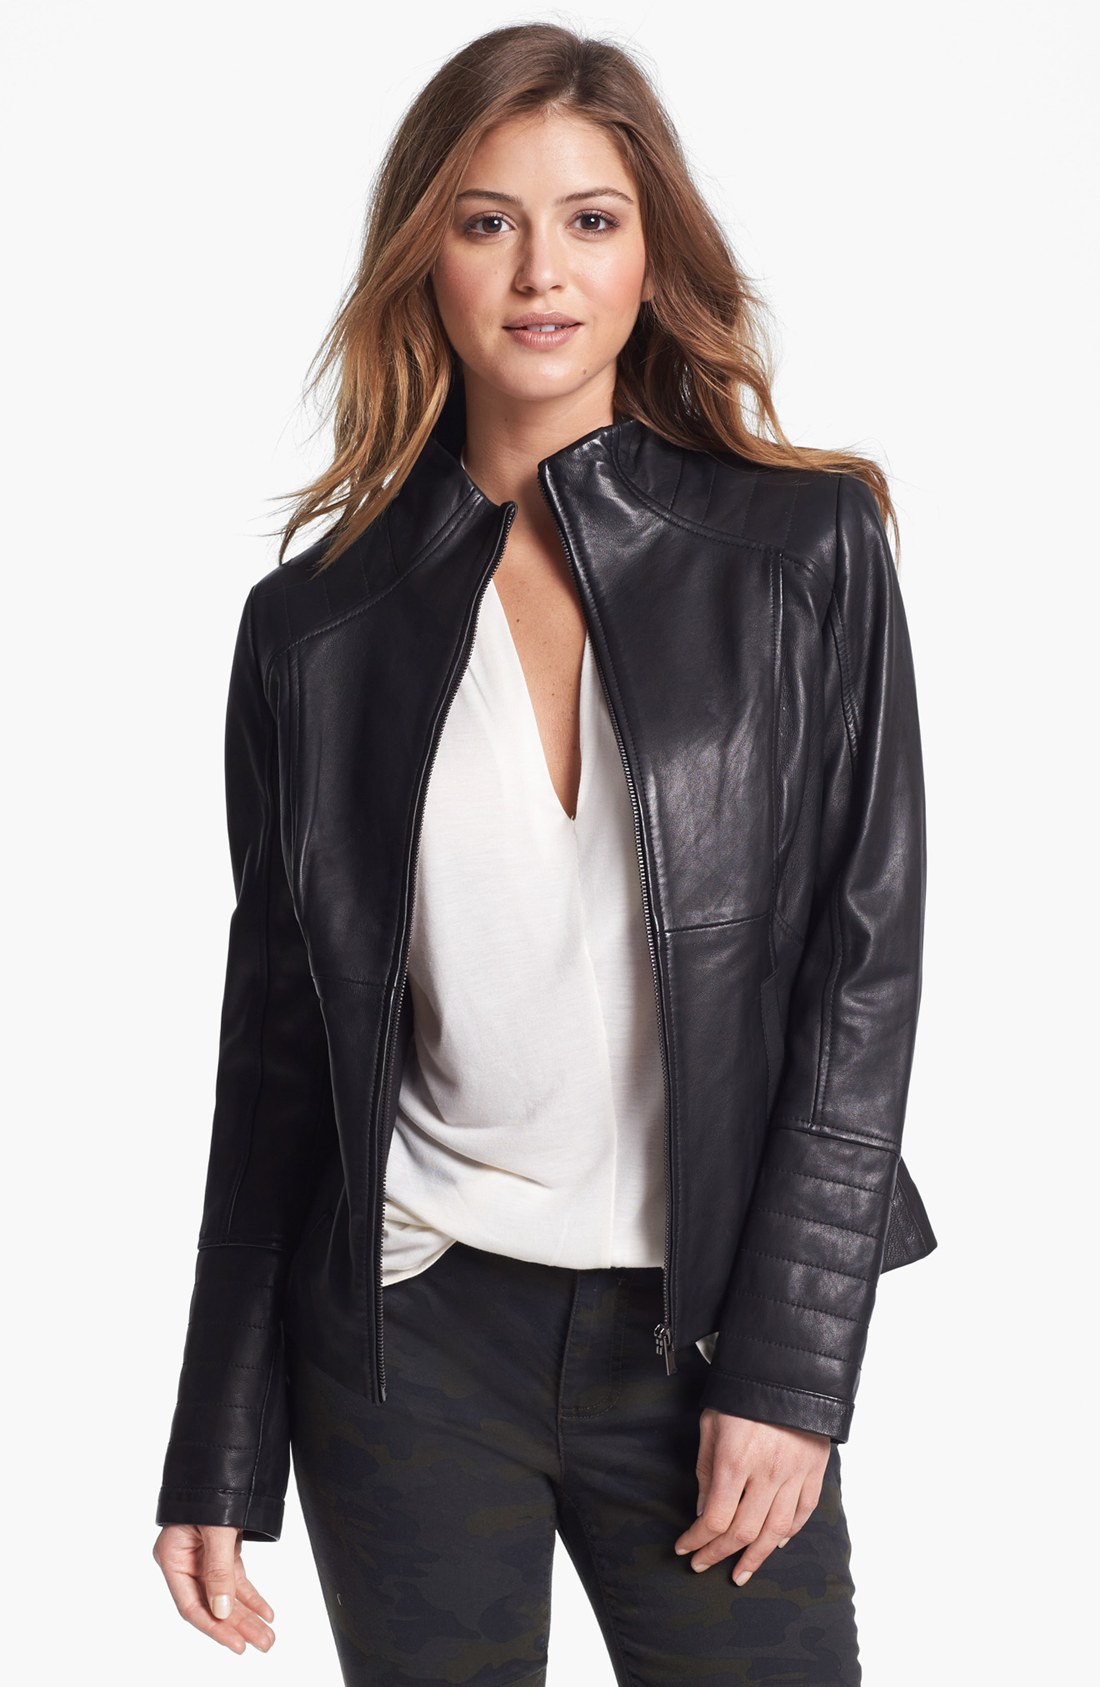 Ladies petite leather jackets